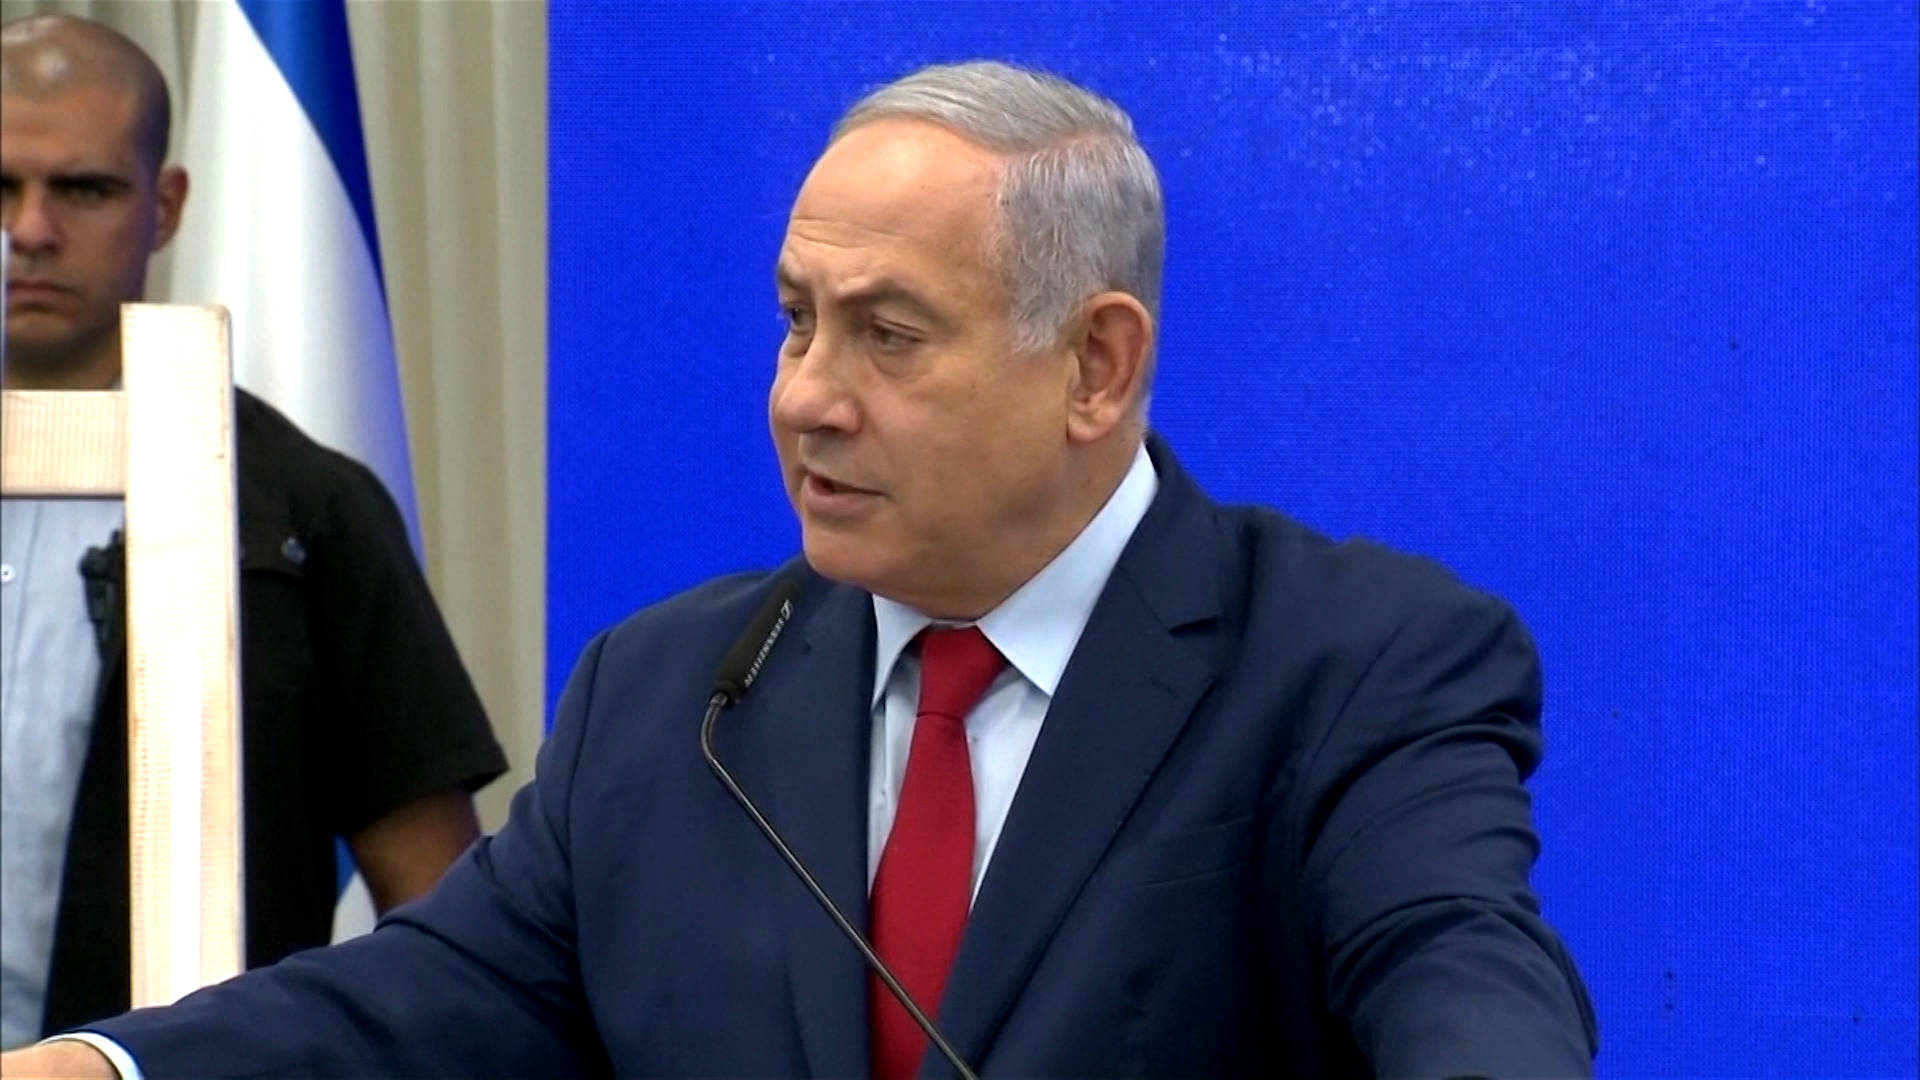 Noura Erakat: Netanyahu's Proposed West Bank Annexation is Logical End to Israel's Apartheid Policy